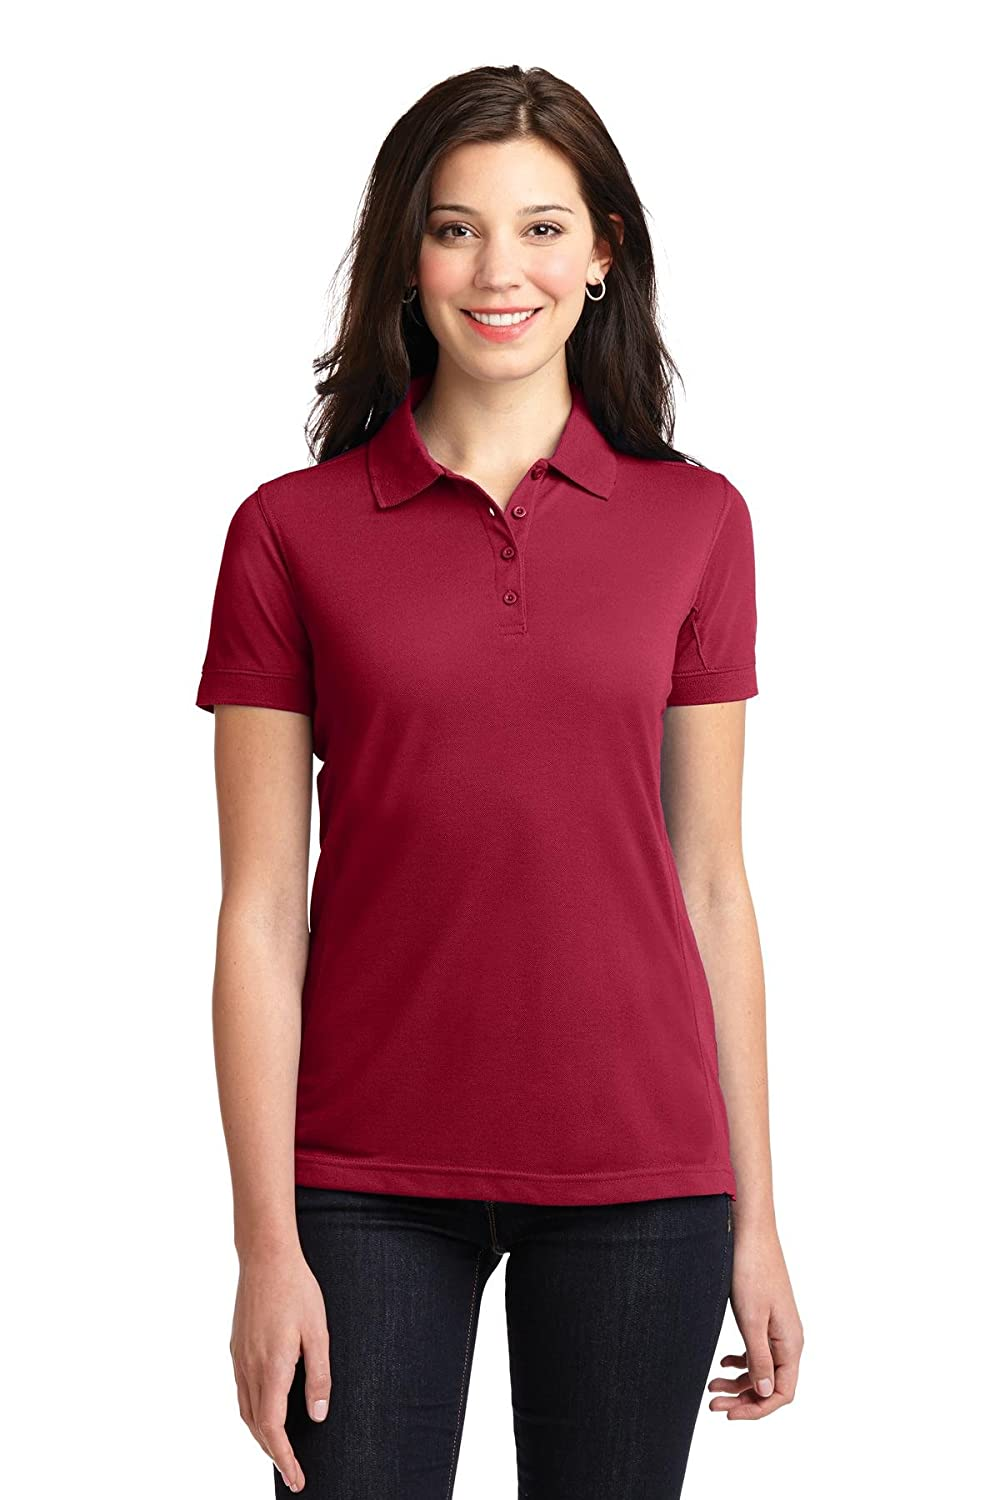 Port Authority Womens 5in1 Performance Pique Polo